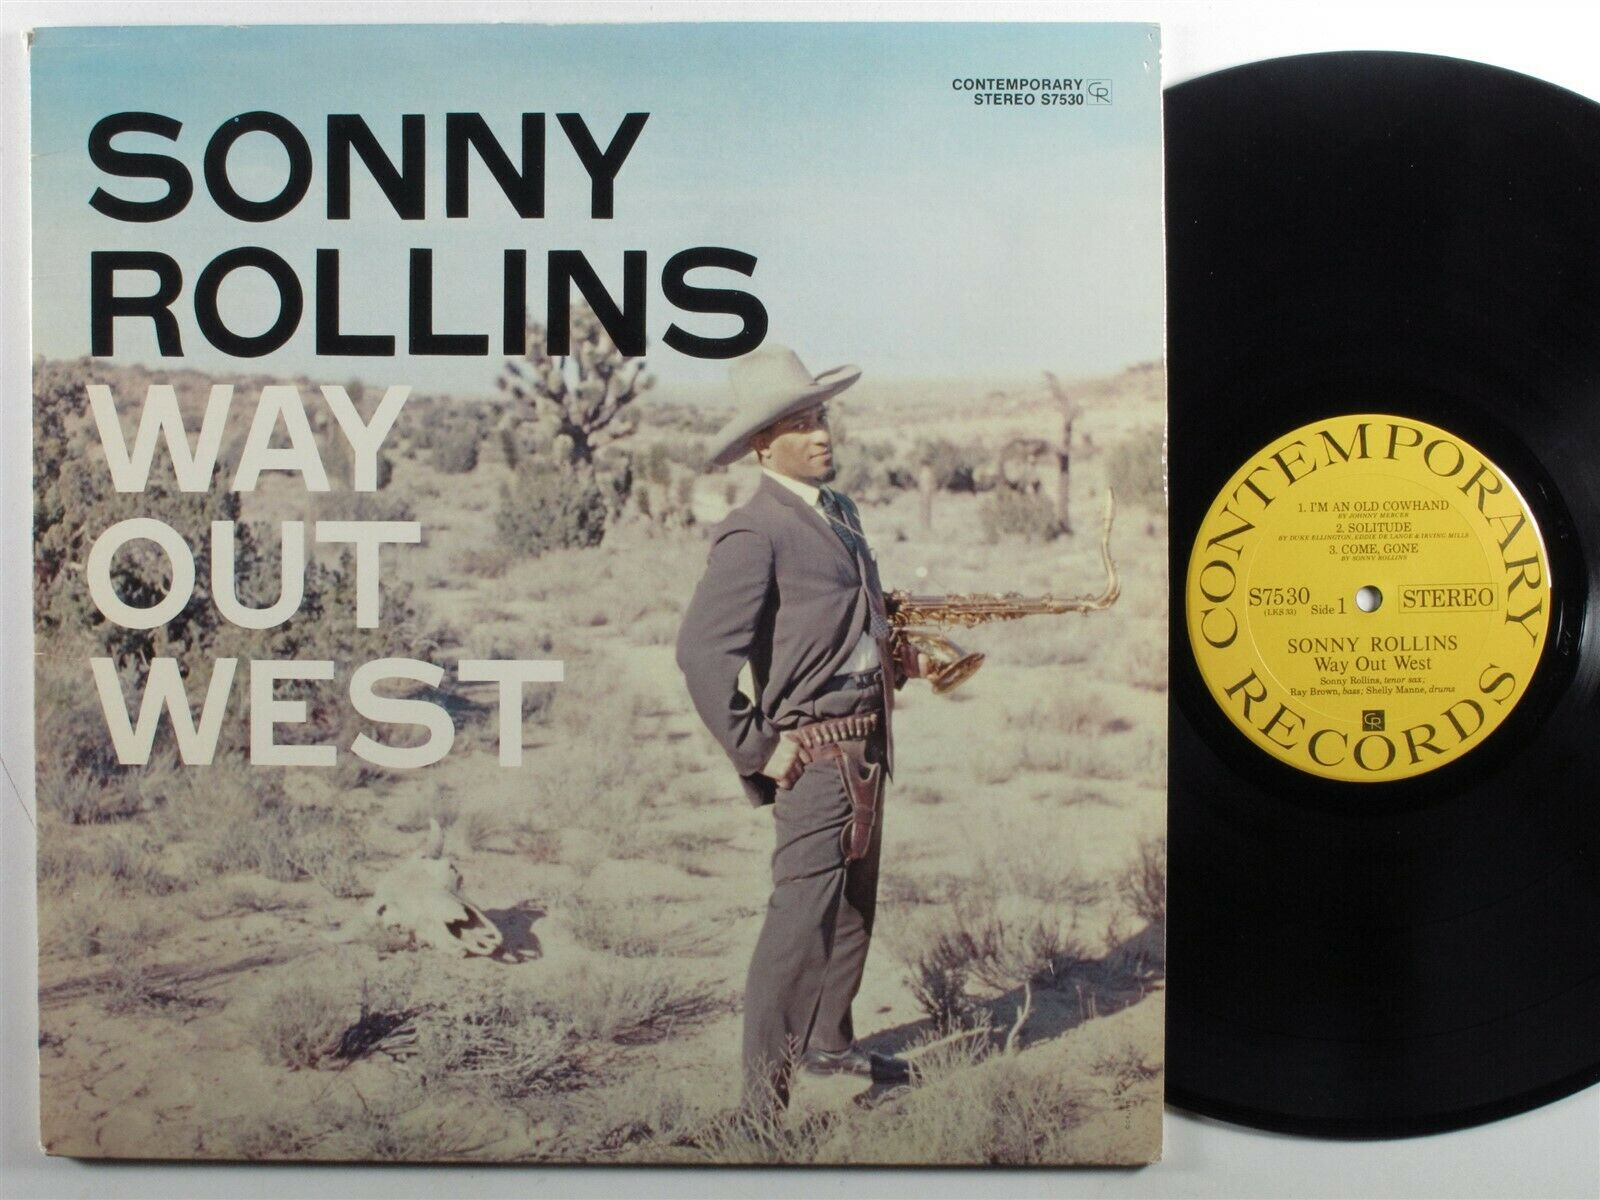 SONNY ROLLINS Way Out West CONTEMPORARY S7530 LP reissue stereo